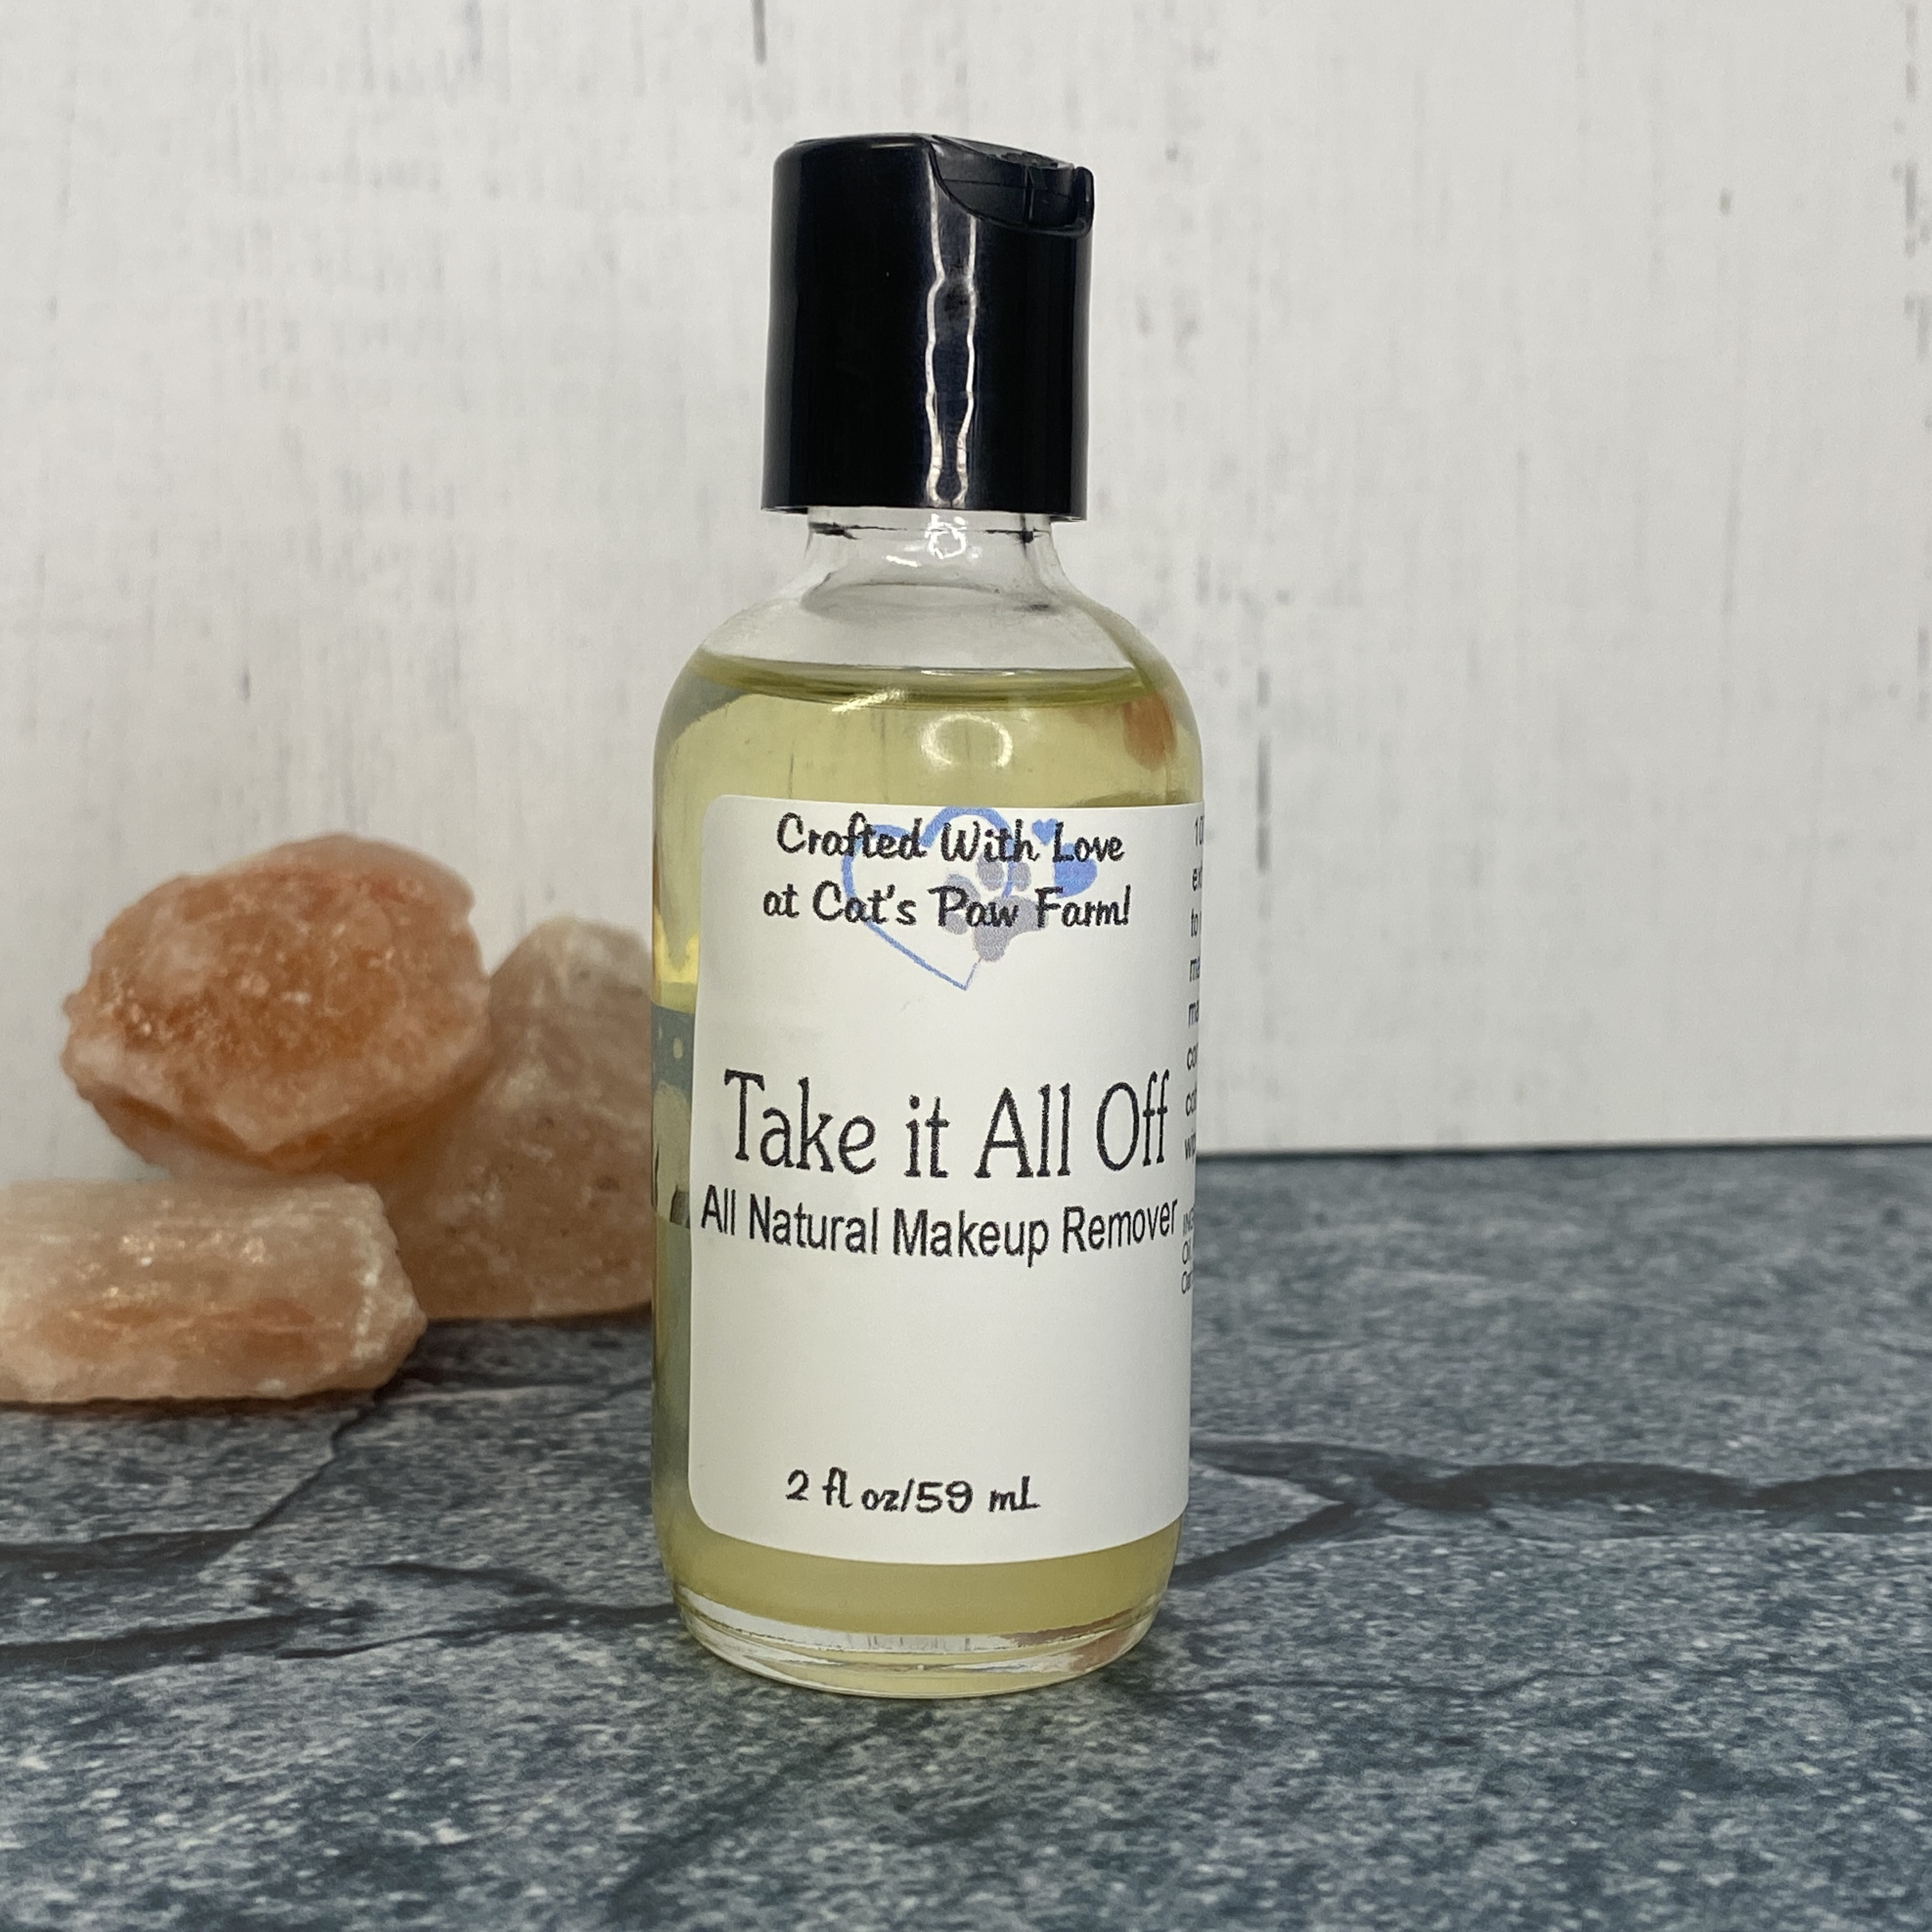 Take it All Off All Natural Makeup Remover